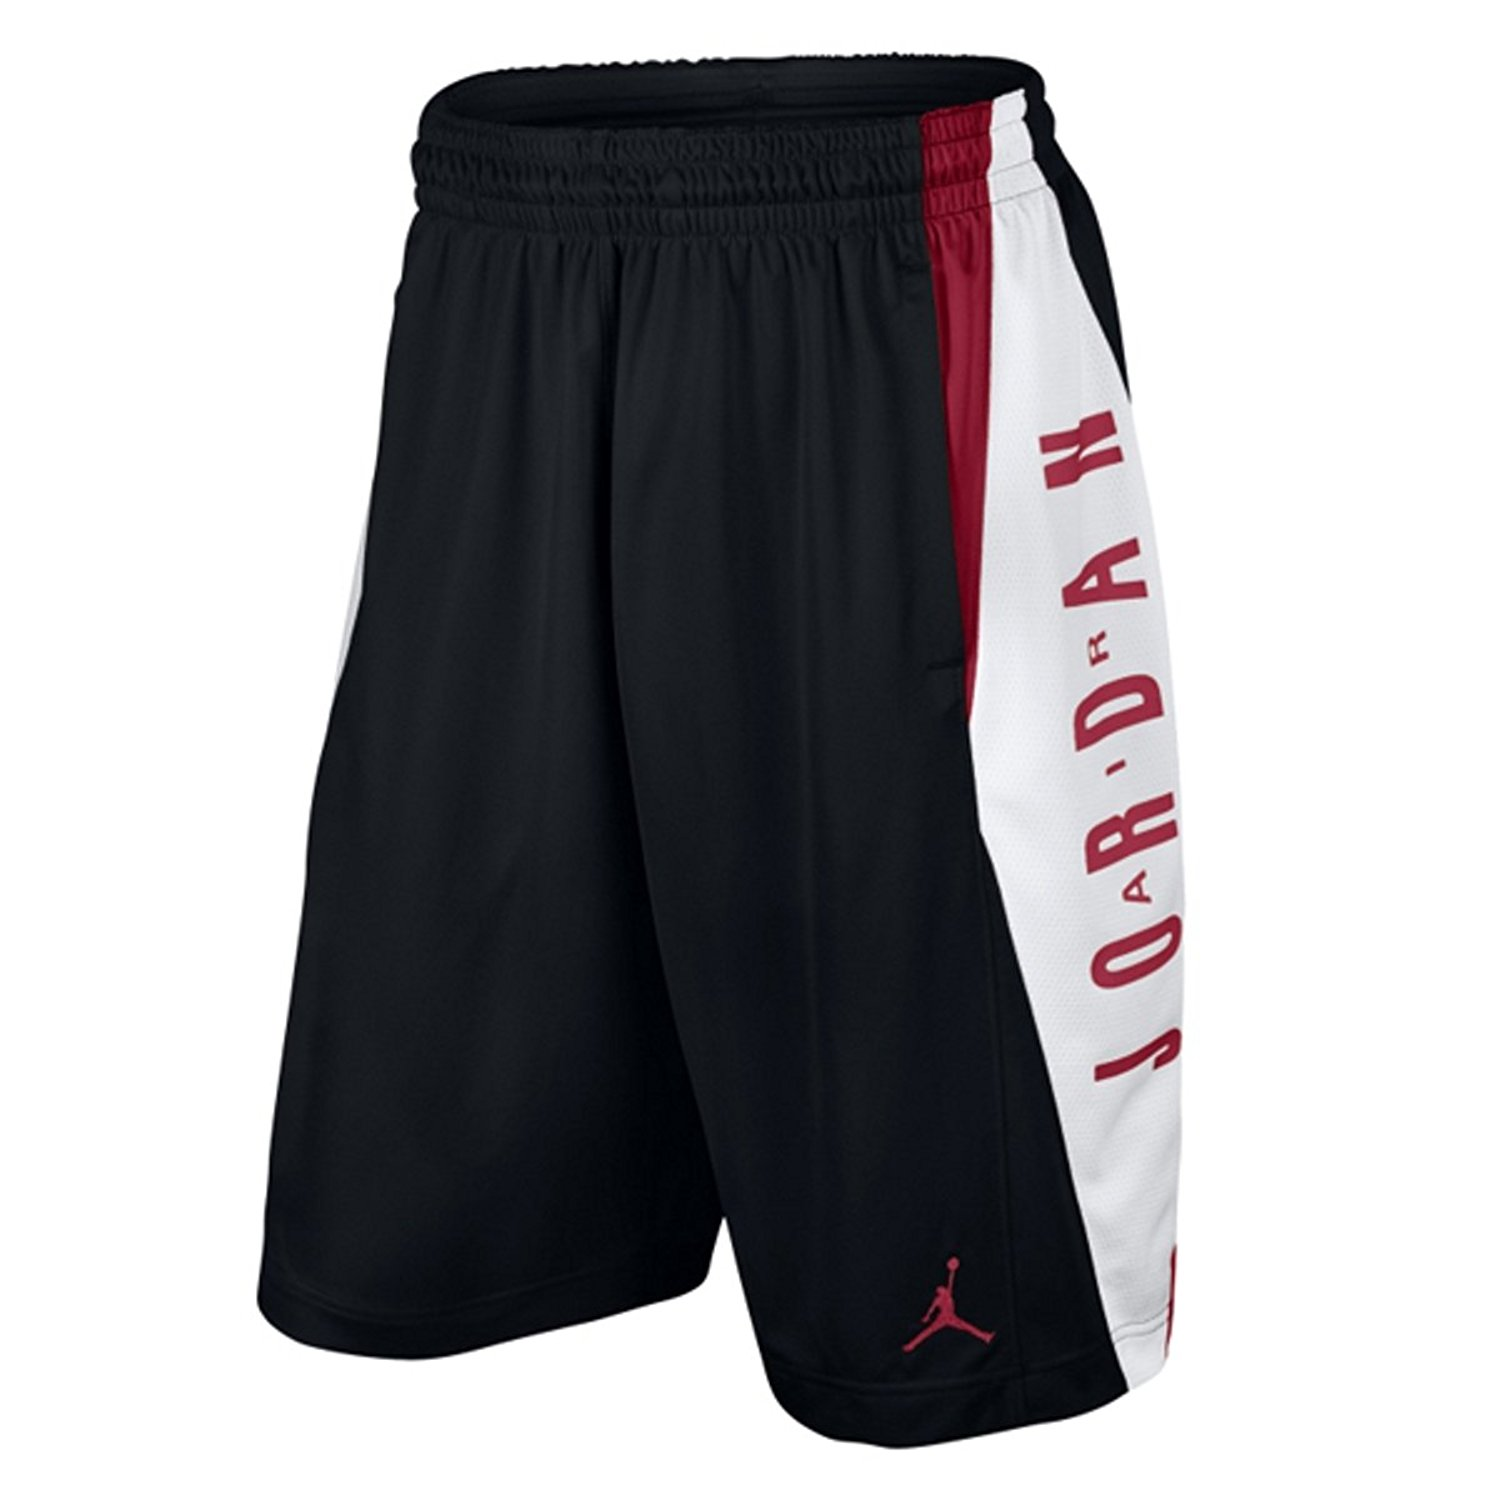 02a3f64cbc7 Get Quotations · Nike Jordan Takeover Shorts Mens Black/Gym Red/White  724831-011